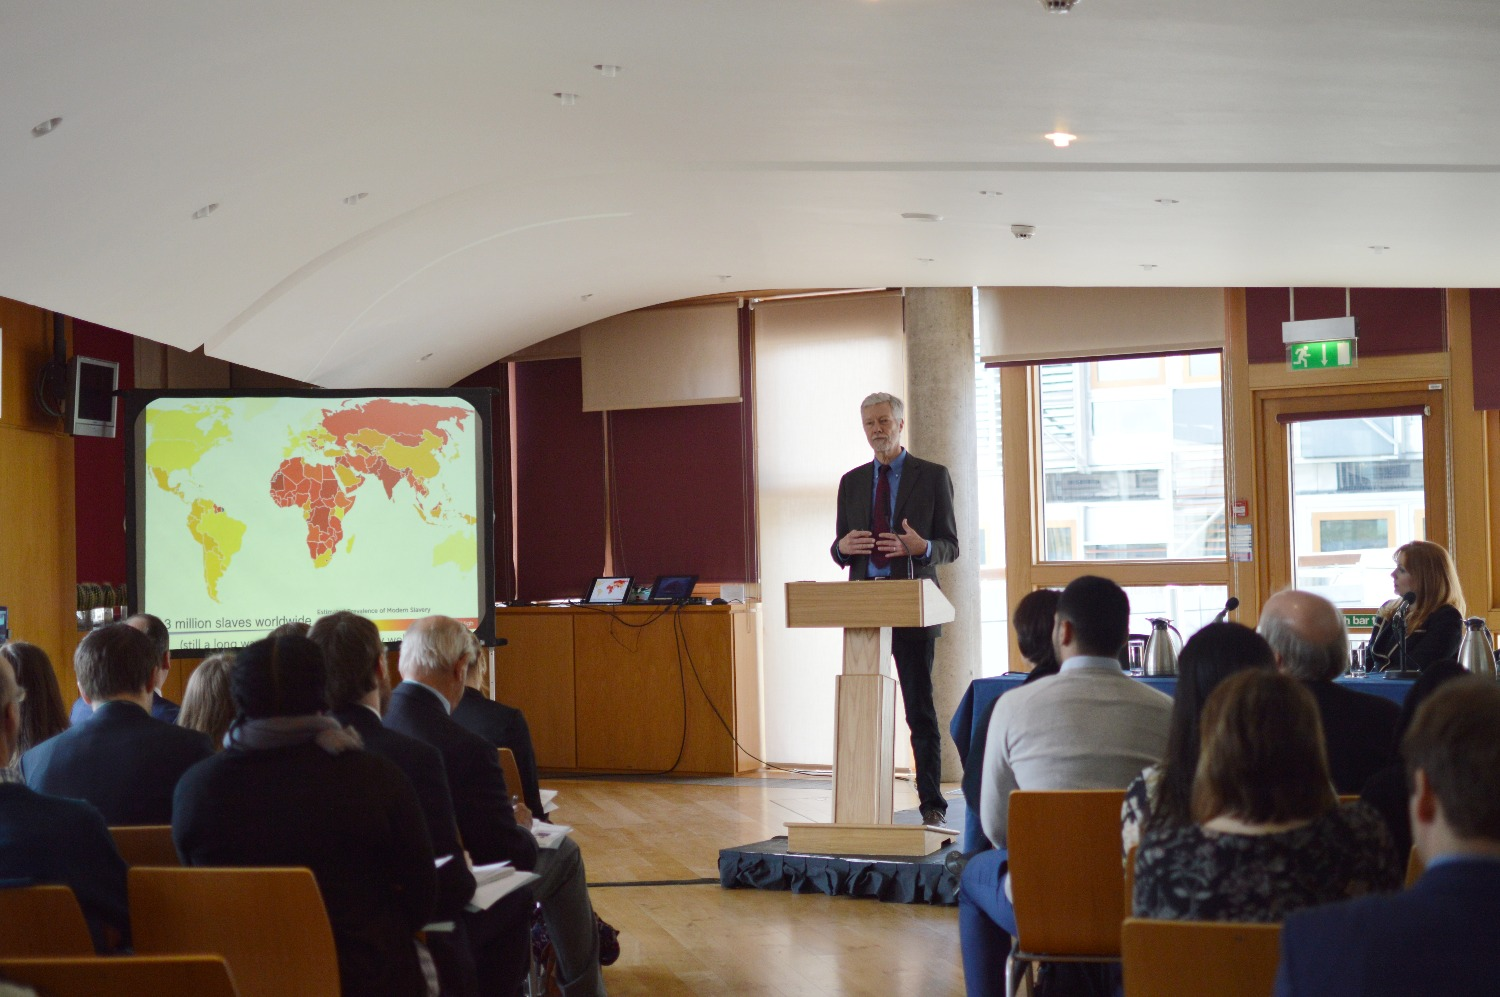 Keynote speaker Kevin Bales presents on Nottingham Uni's research on human trafficking.